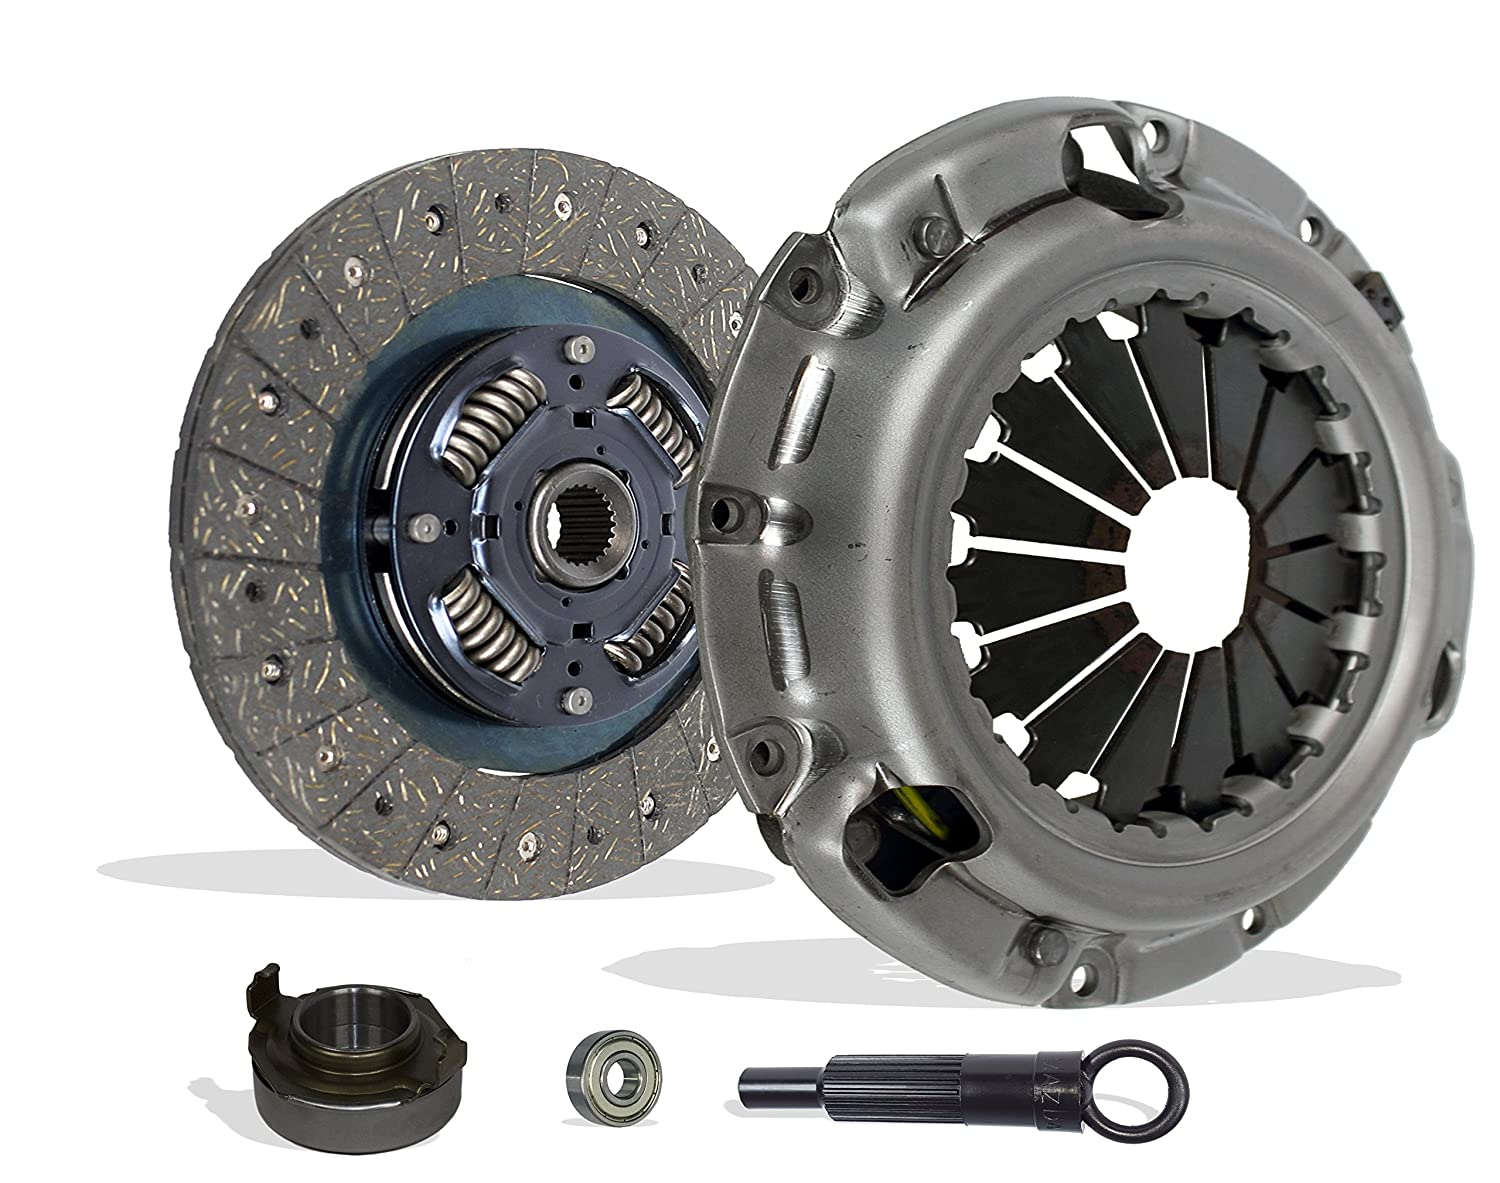 Amazon.com: Clutch Kit Works With Kia Sportage Base Ex Limited Sport Utility 1995-2002 2.0L l4 GAS DOHC Naturally Aspirated (Flywheel Spec: -.810): ...